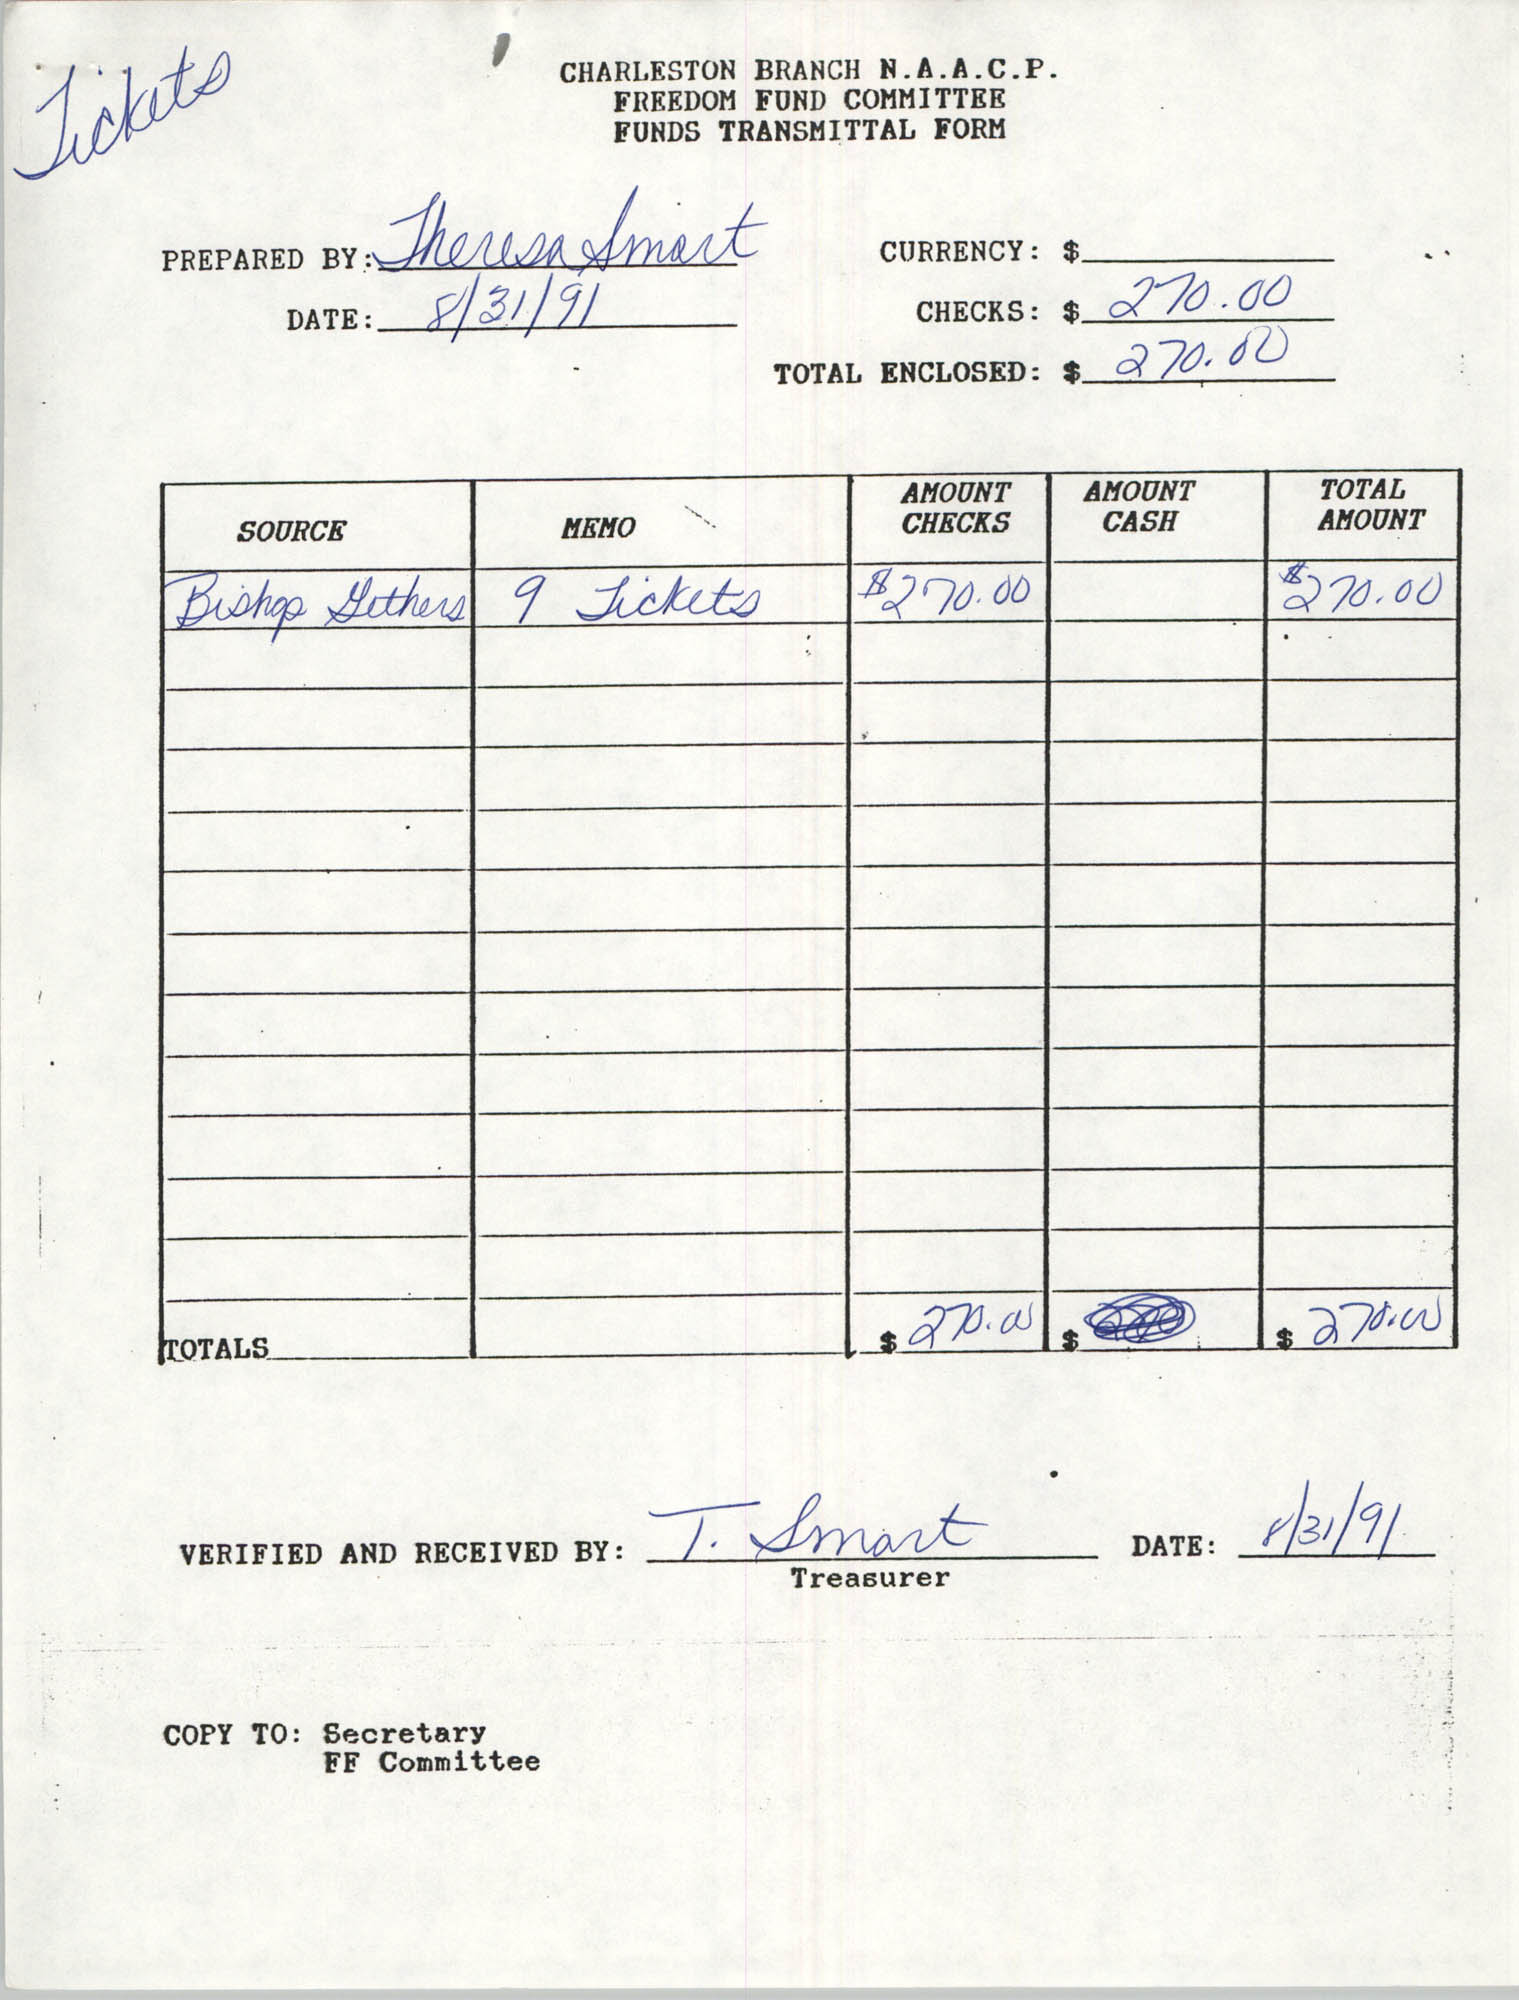 Charleston Branch of the NAACP Funds Transmittal Forms, September 1991, Page 2